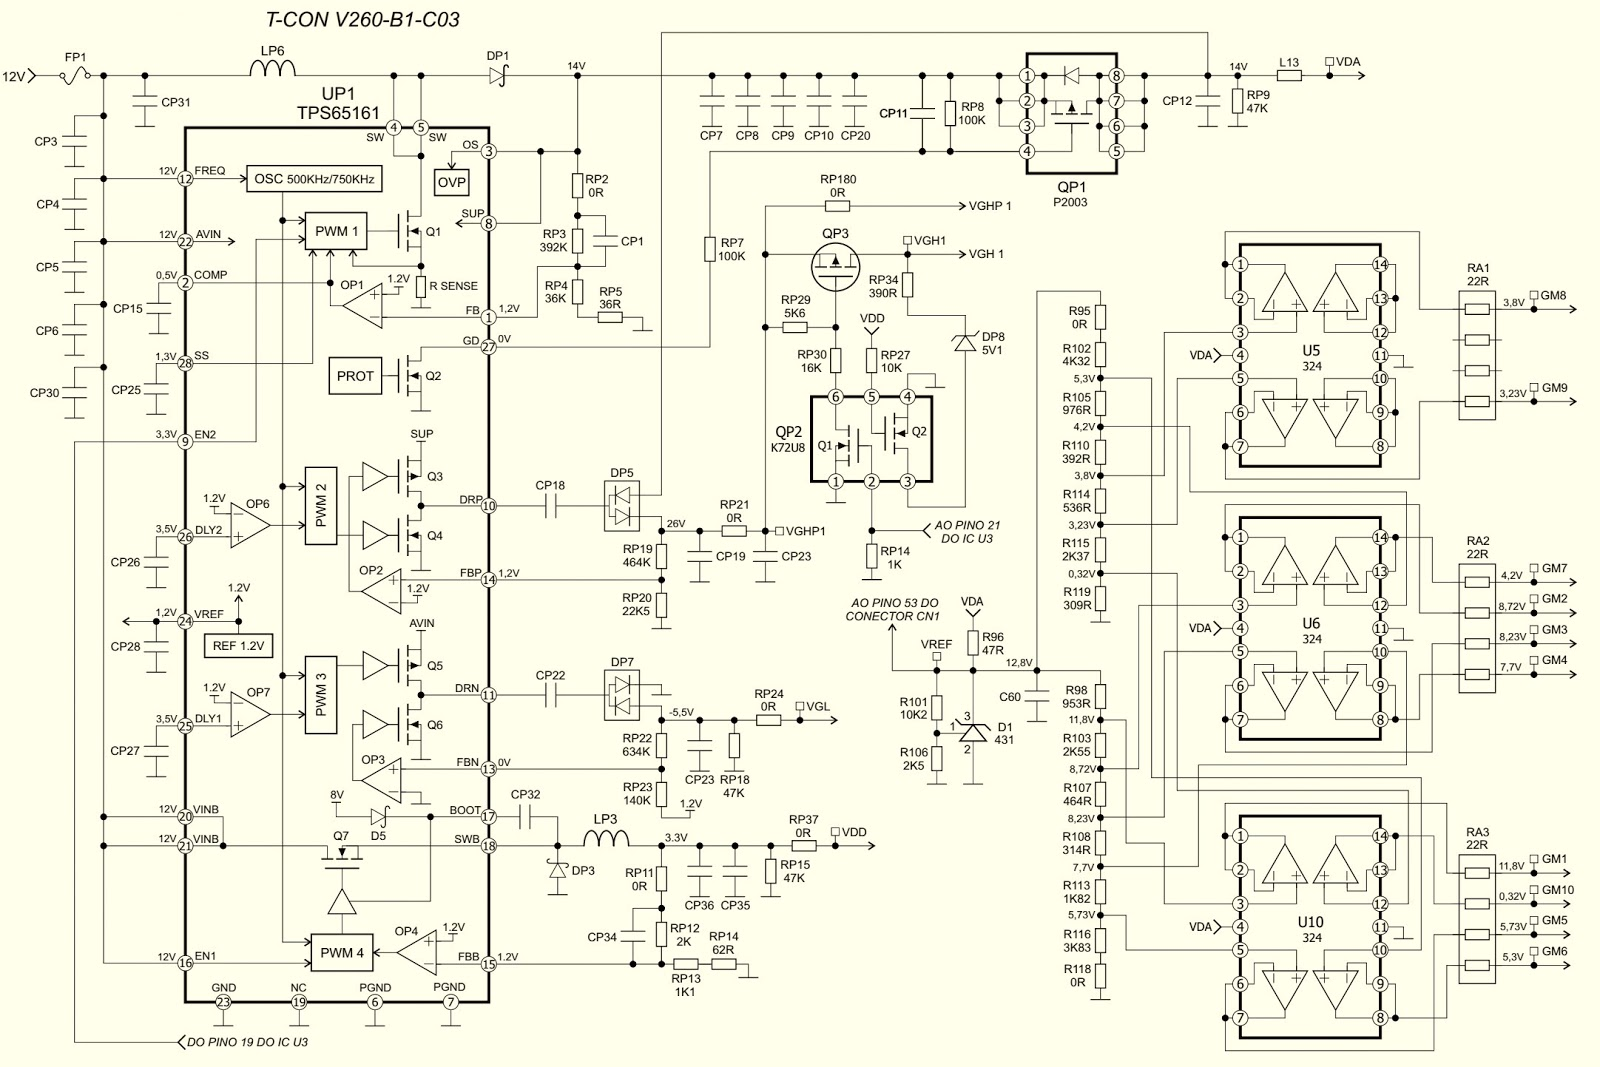 hight resolution of lg 26lc55 lcd tv t con board v260 b1 c03 circuit diagram led tv schematic tcon board schematic or